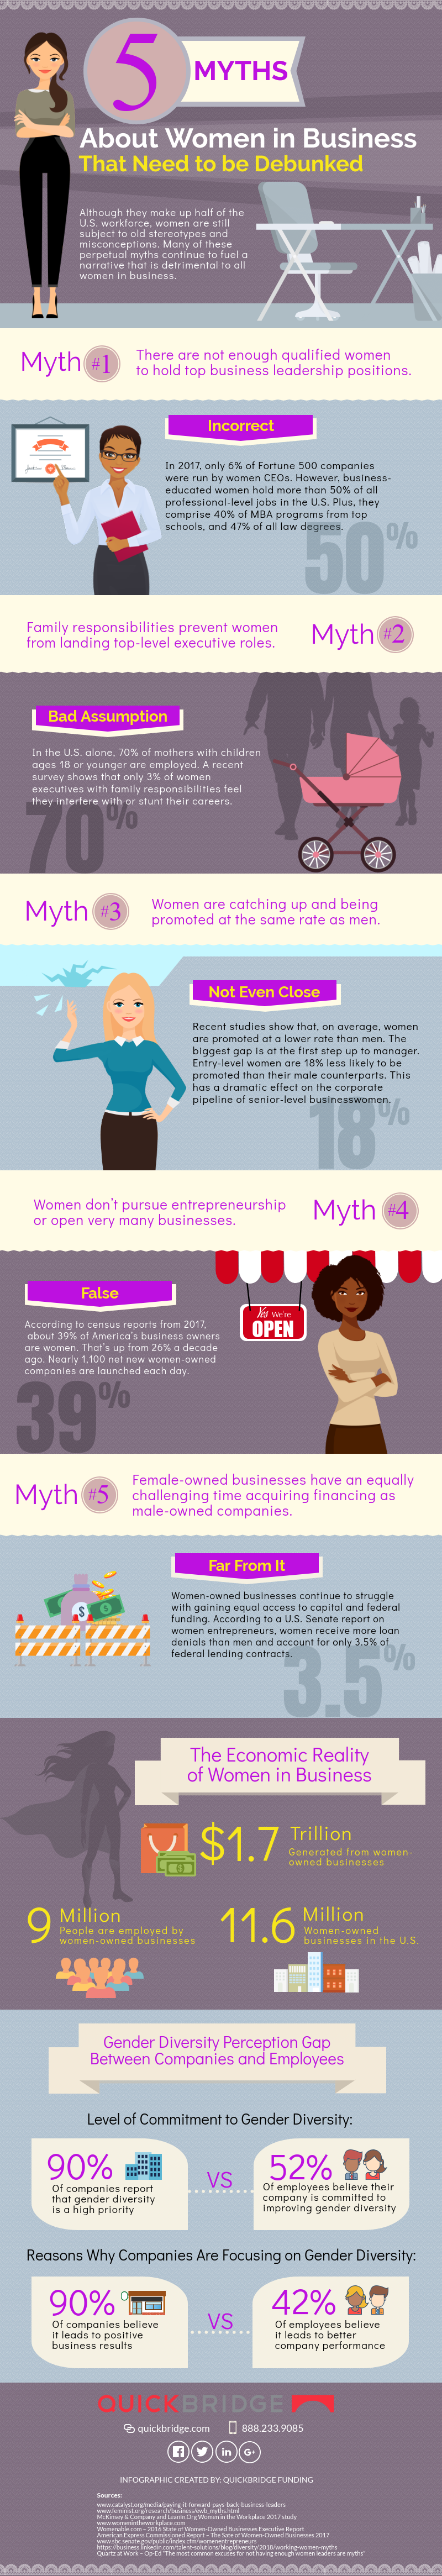 5 Myths About Women in Business That Need to be Debunked